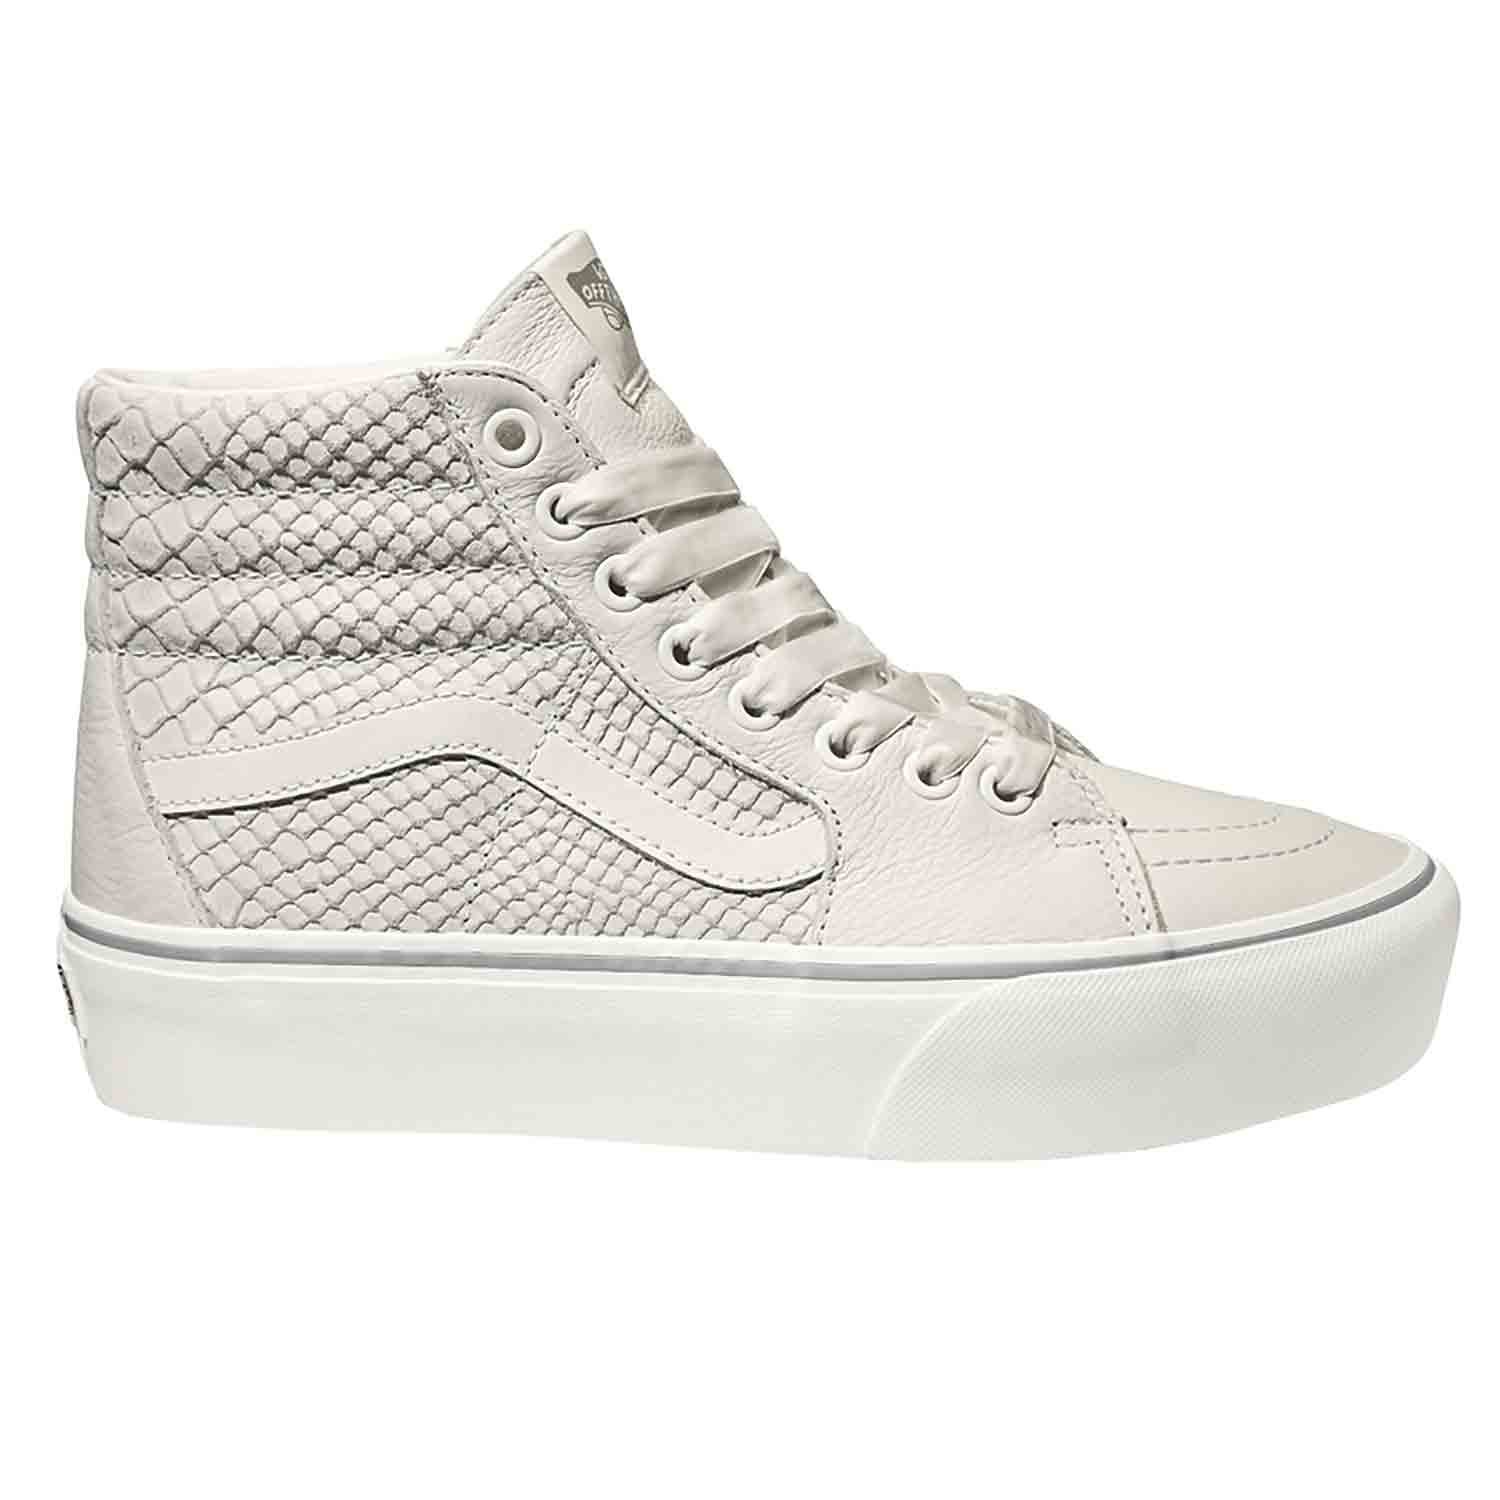 e67debc942 Vans Sk8 Hi Platform 2.0 Leather Unisex Footwear Shoe - Snake White ...